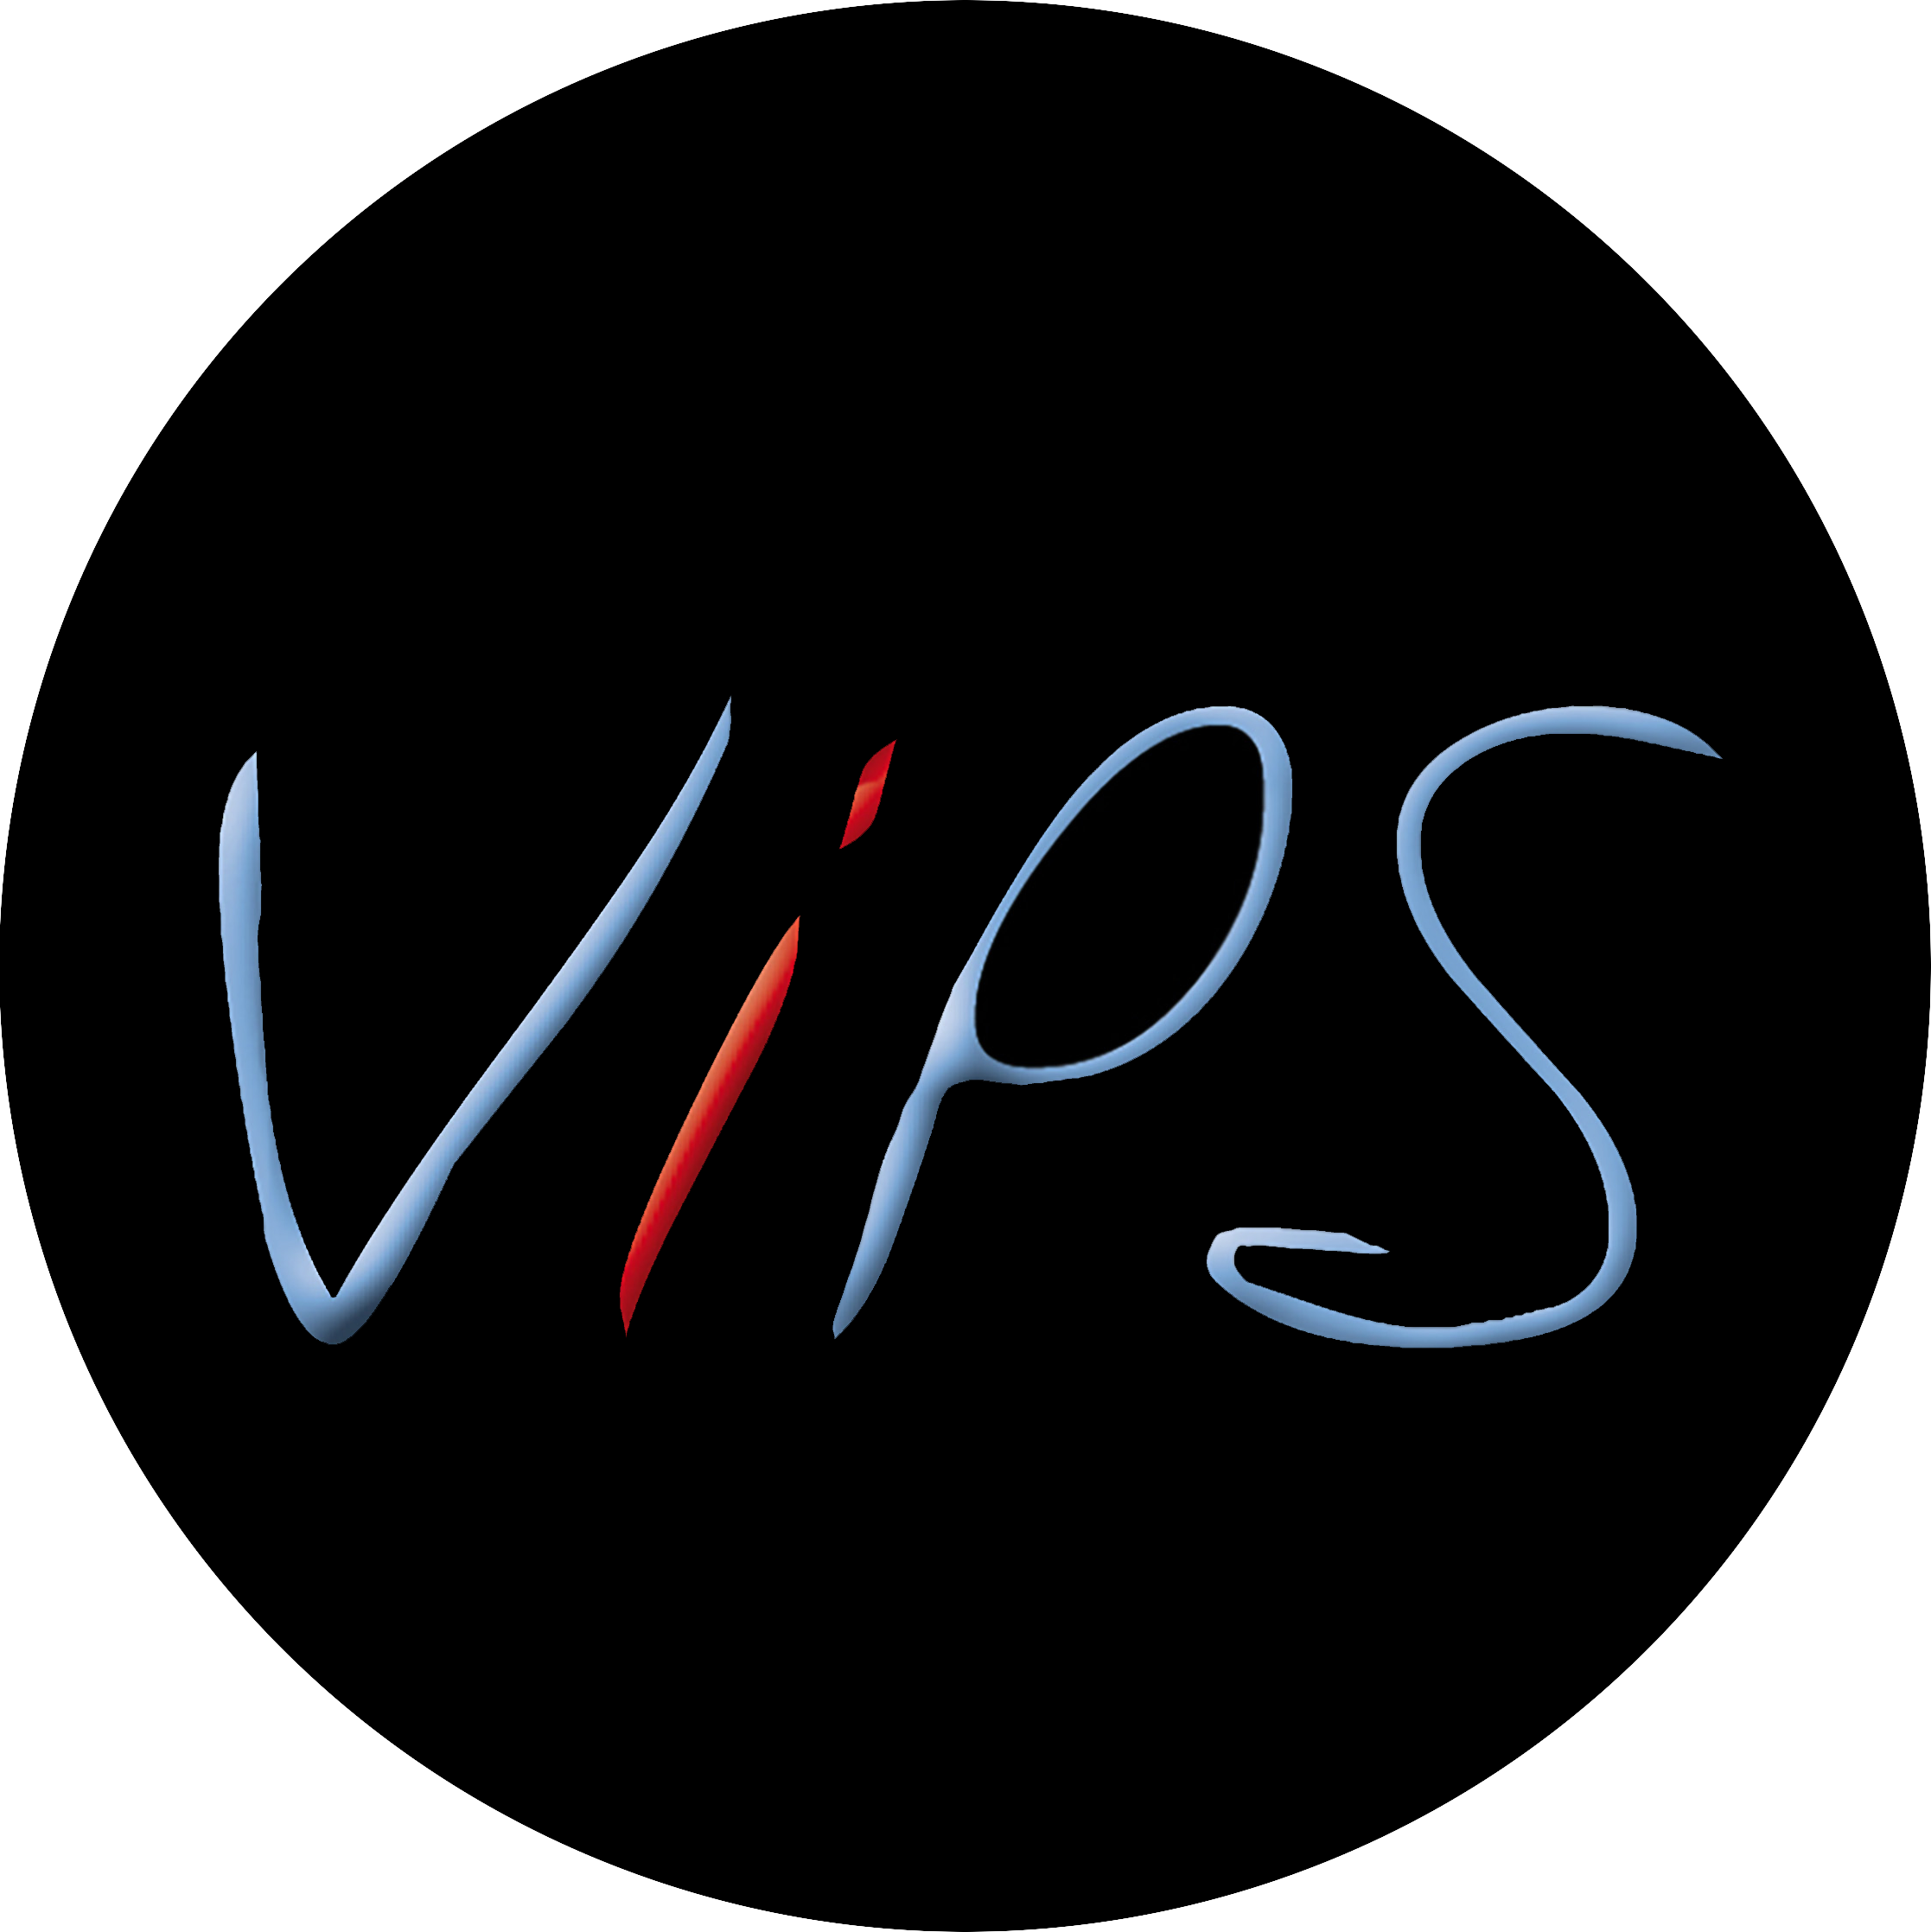 ViPS_logo_new_10_round.png